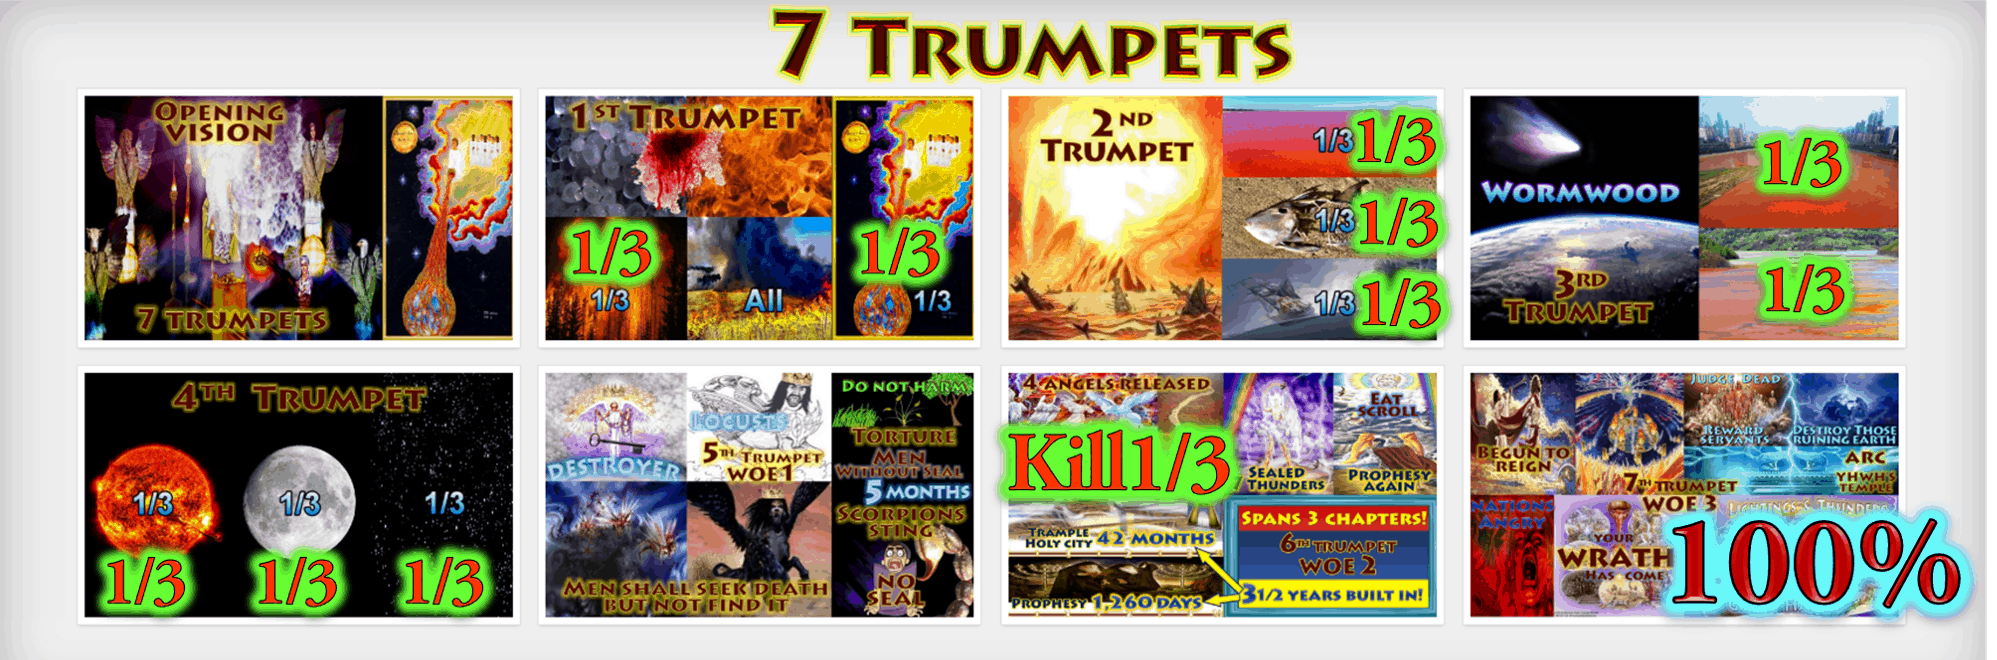 Third Destruction, 1/3,1/3rd,Third Earth Burnt,Third trees burnt,third sea blood,third sea creatures died,third boats,wrecked,destroyed,third rivers,third springs,wormwood,third sun,third,moon,third,stars,Kill third,Measurement of destruction,Book of Revelation,Seven Trumpets,First Trumpet,Second Trumpet,Third Trumpet,Fourth Trumpet,Fifth Trumpet,Sixth Trumpet,Seventh Trumpet,Book of Revelation,Picture Gallery,Album,Chapter 8,Chapter 9,Chapter 10,Chapter 11,Seven Vials of Wrath,7 Vials,7 Bowls,Seven Bowls,wrath,Picture Gallery,Book of Revelation,First Vial,Second Vial,Third Vial,Fourth Vial,Fifth Vial,Sixth Vial,Seventh Vial,Chapter 15,Chapter 16,Chapter 19,Armageddon,7 Bowls of Wrath,First Bowl,Second Bowl,Third Bowl,Fourth Bowl,Fifth Bowl,Sixth Bowl,Seventh Bowl,Earth,sea,rivers,springs,sun,throne of Beast,Euphrates,Armageddon,air,Babylon,cities of nations,islands,mountains,Great City,Jerusalem,Hail,Blood,Complete destruction,annihilation,judgment,one hundred percent